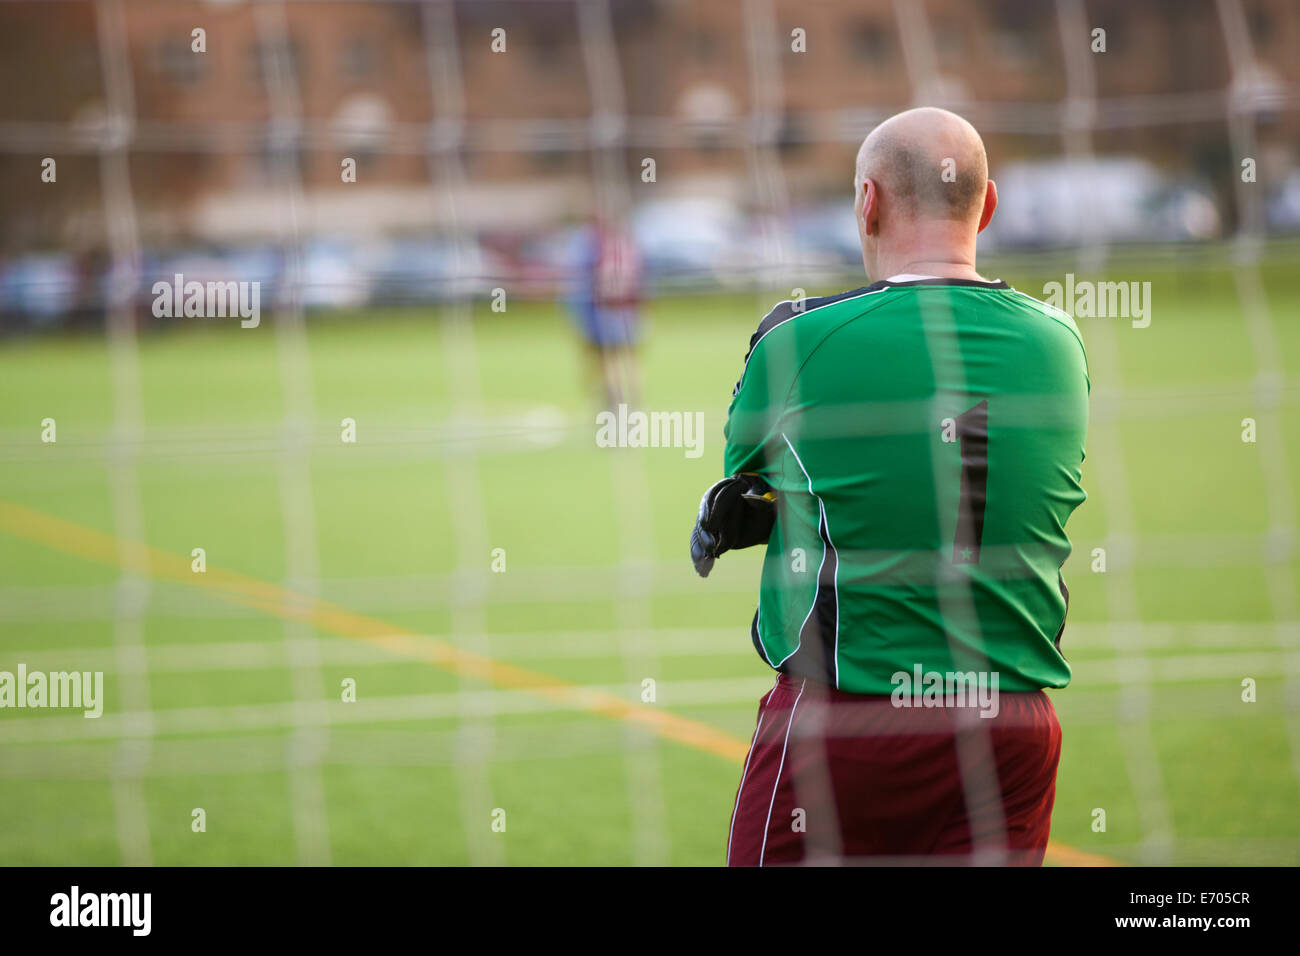 Rearview of goalie at football game - Stock Image